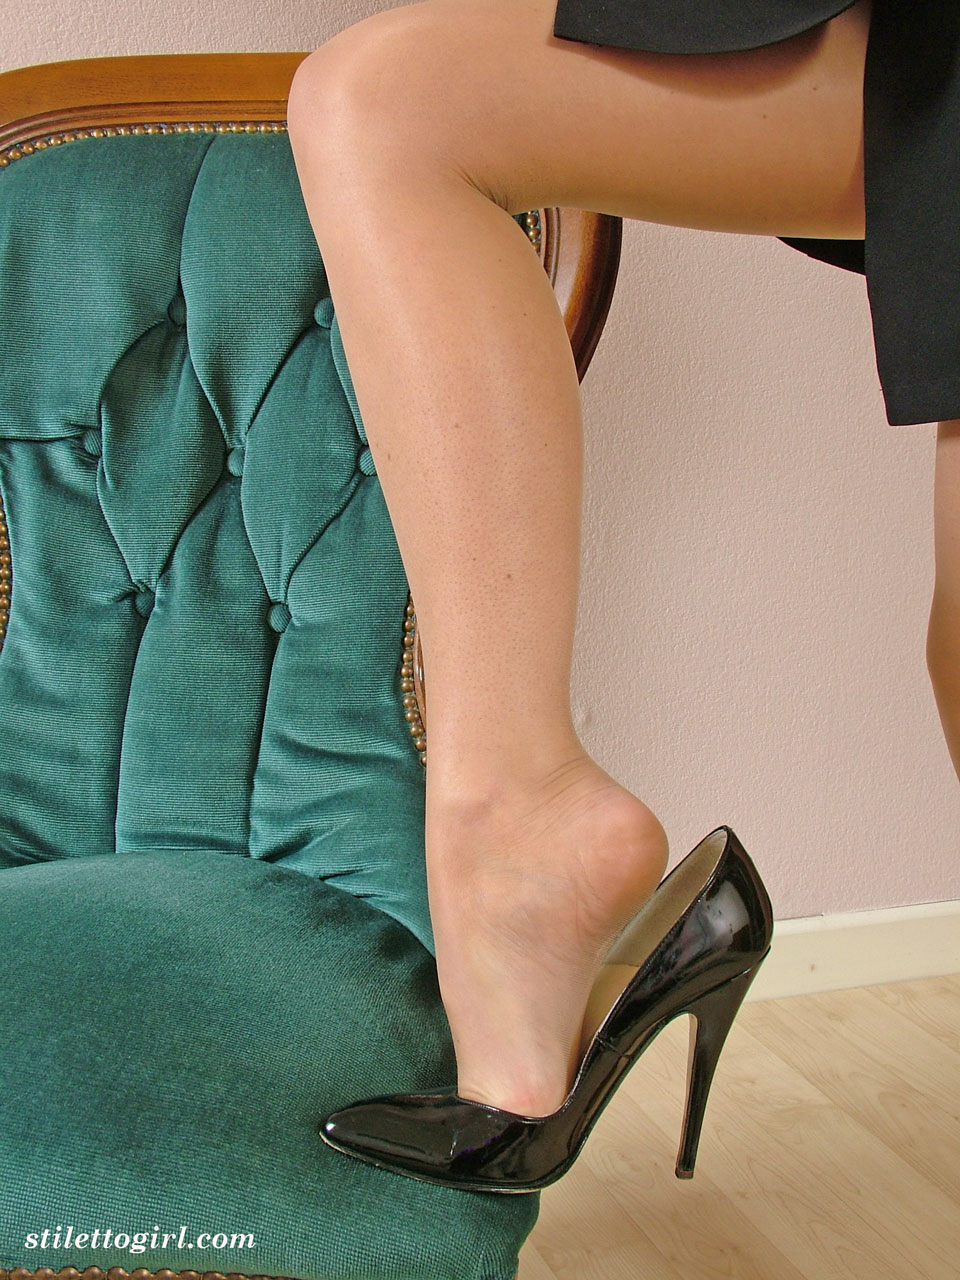 classy shoe fetish woman can t decide which heels to put